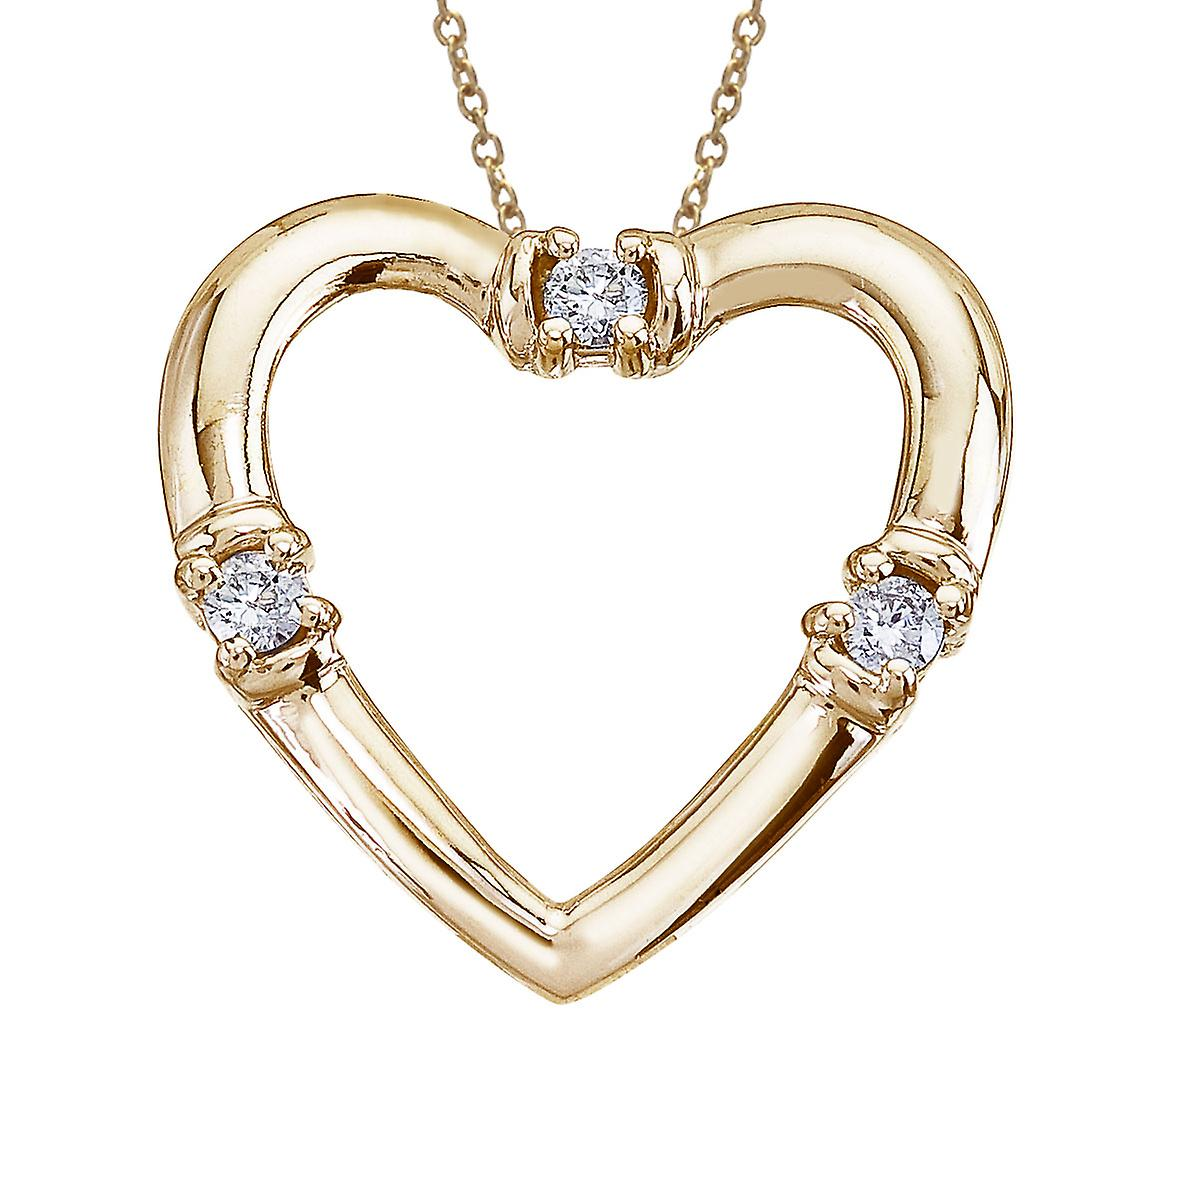 14K Yellow Gold and Diamond Open Heart Pendant with 18